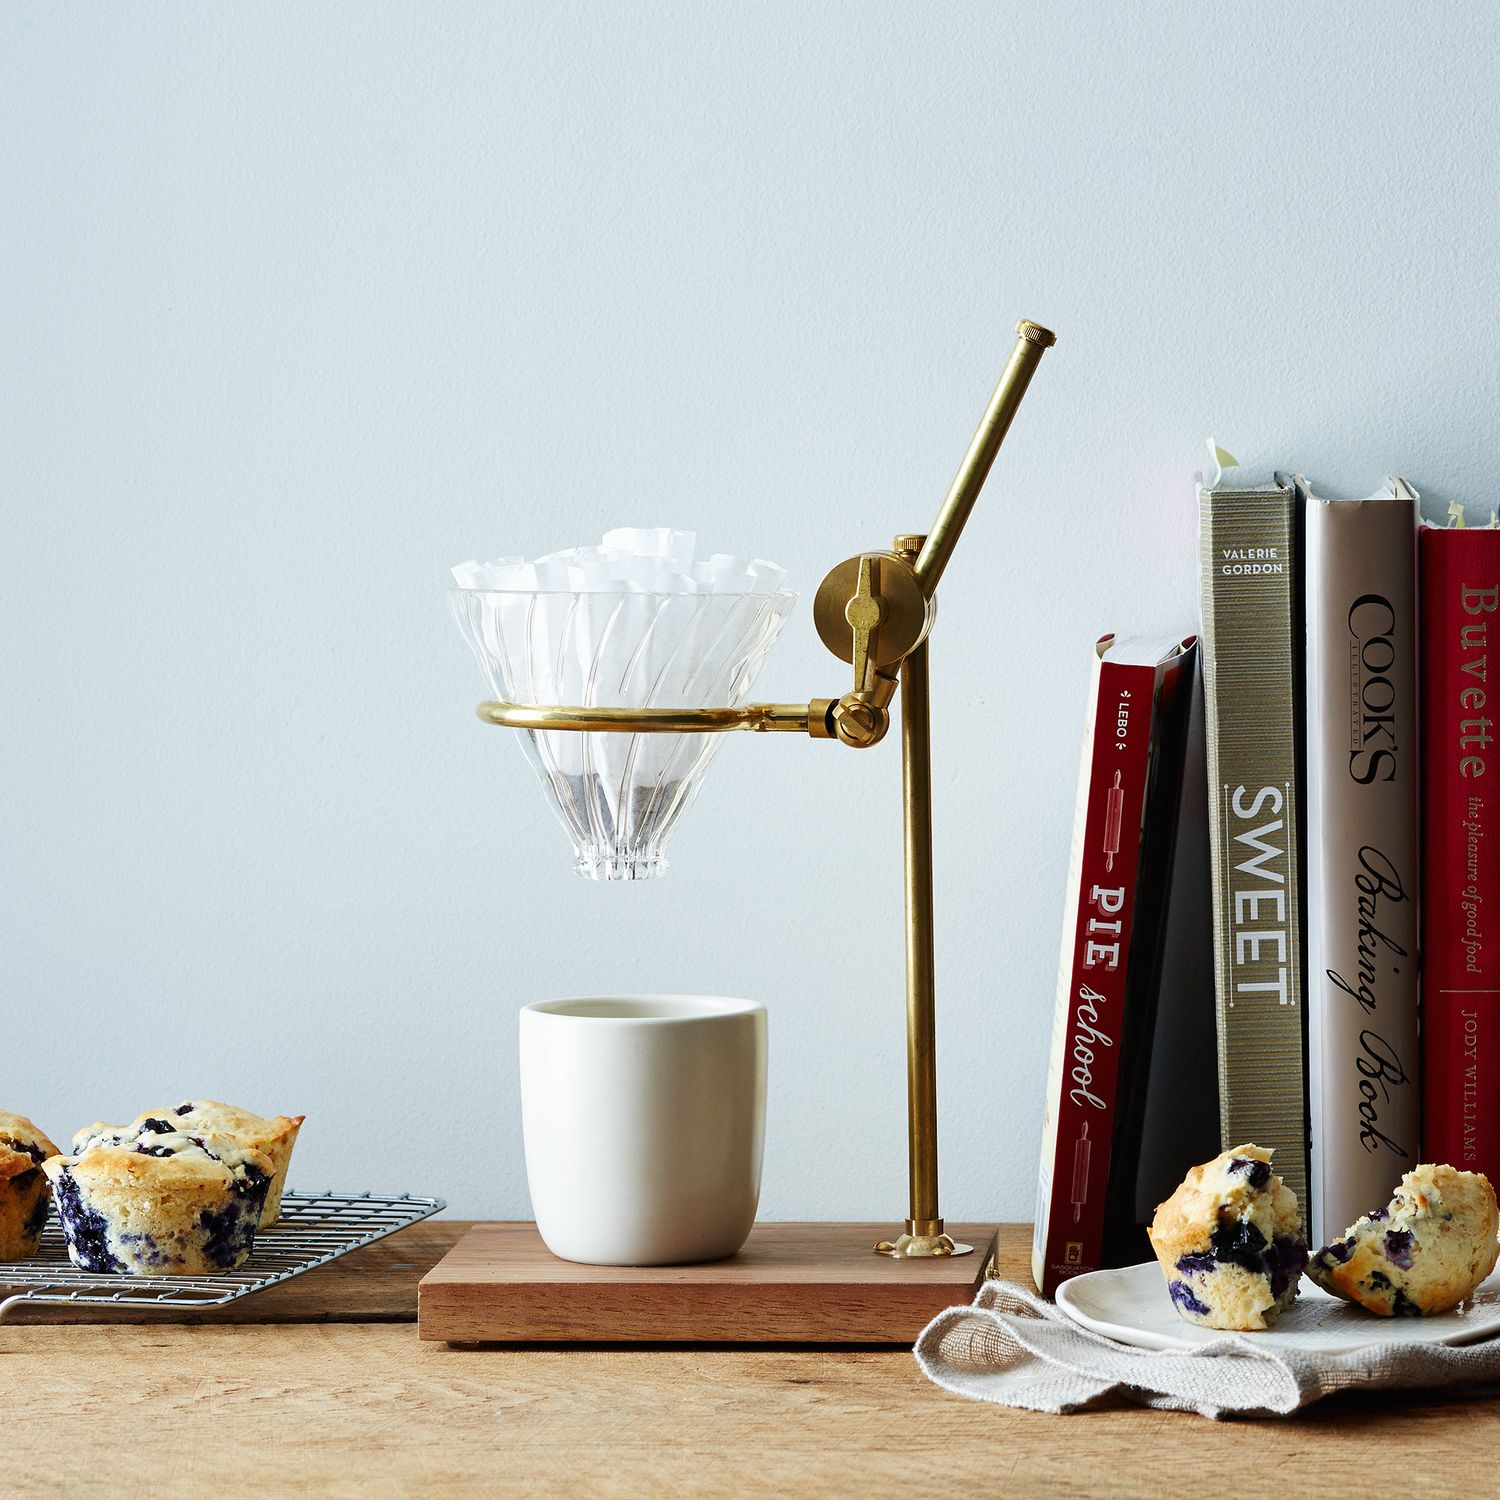 Pour Over Coffee Maker Stand : Brass & Walnut Pour Over Coffee Stand on Food52